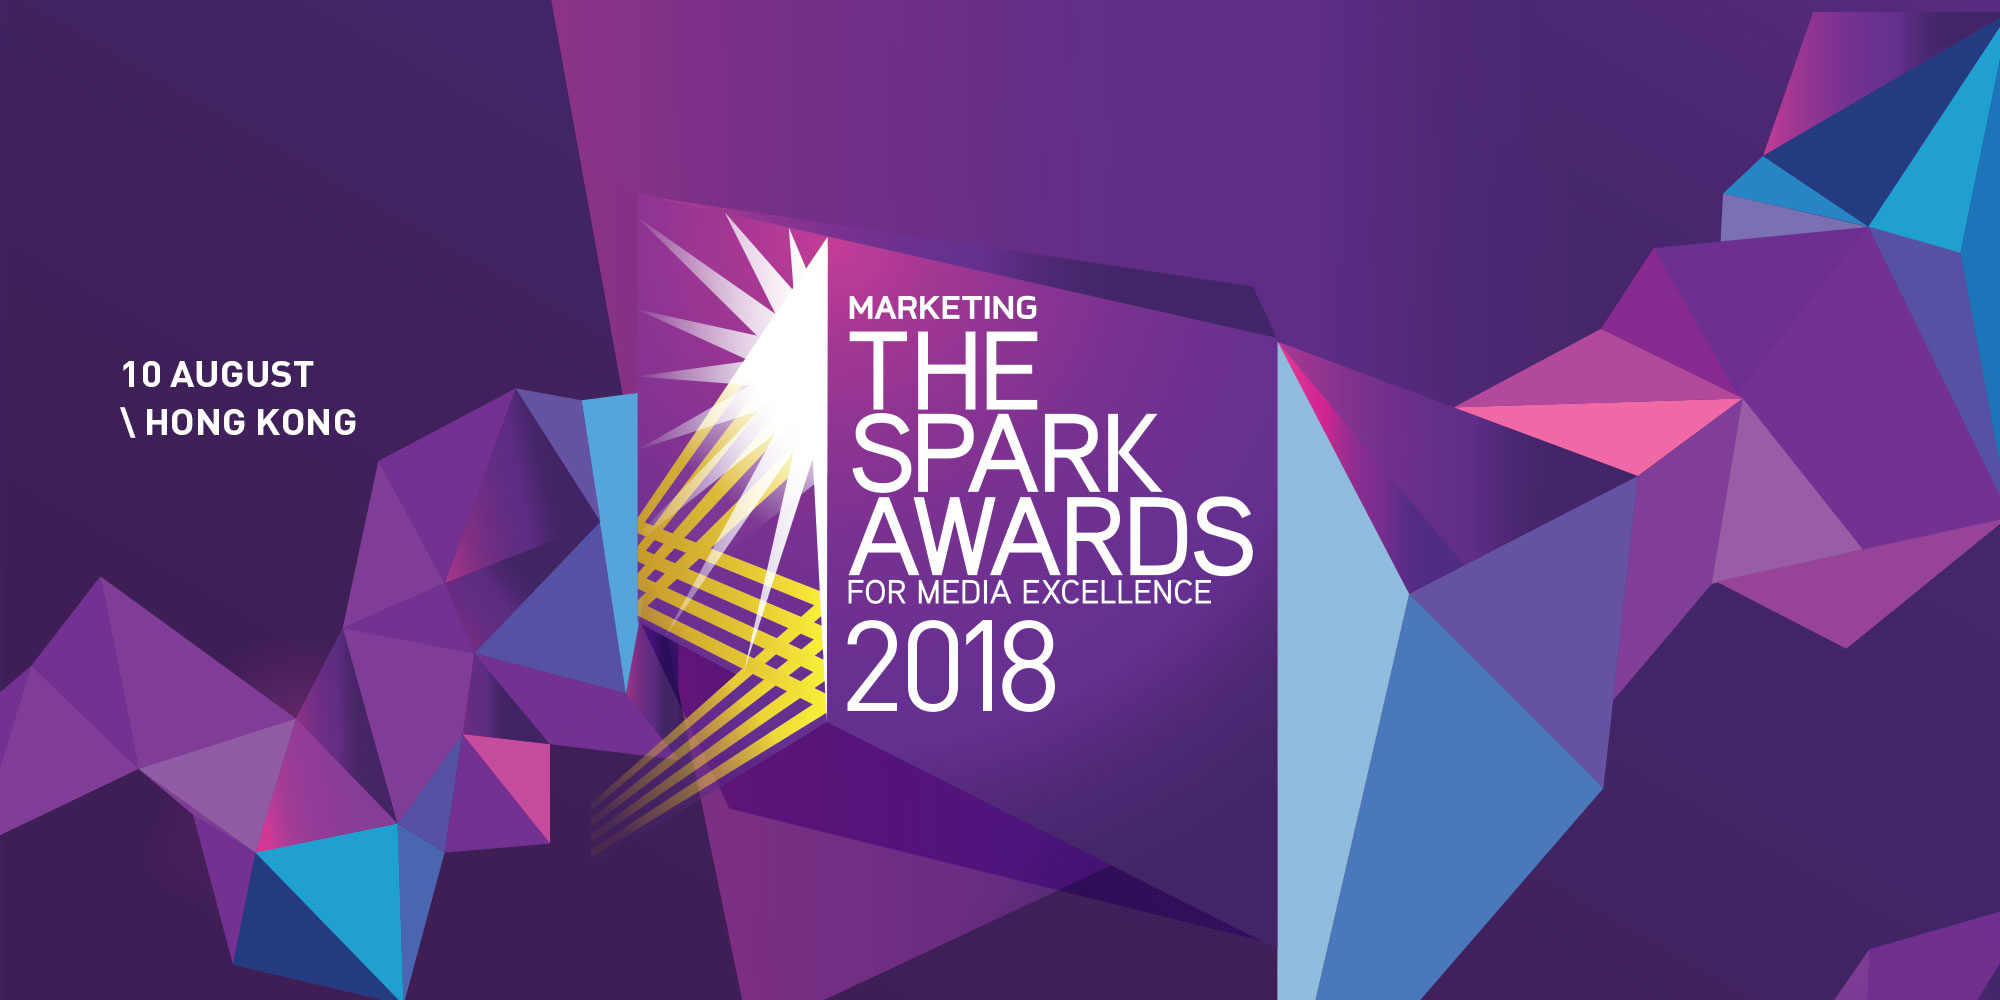 The Spark Awards 2018